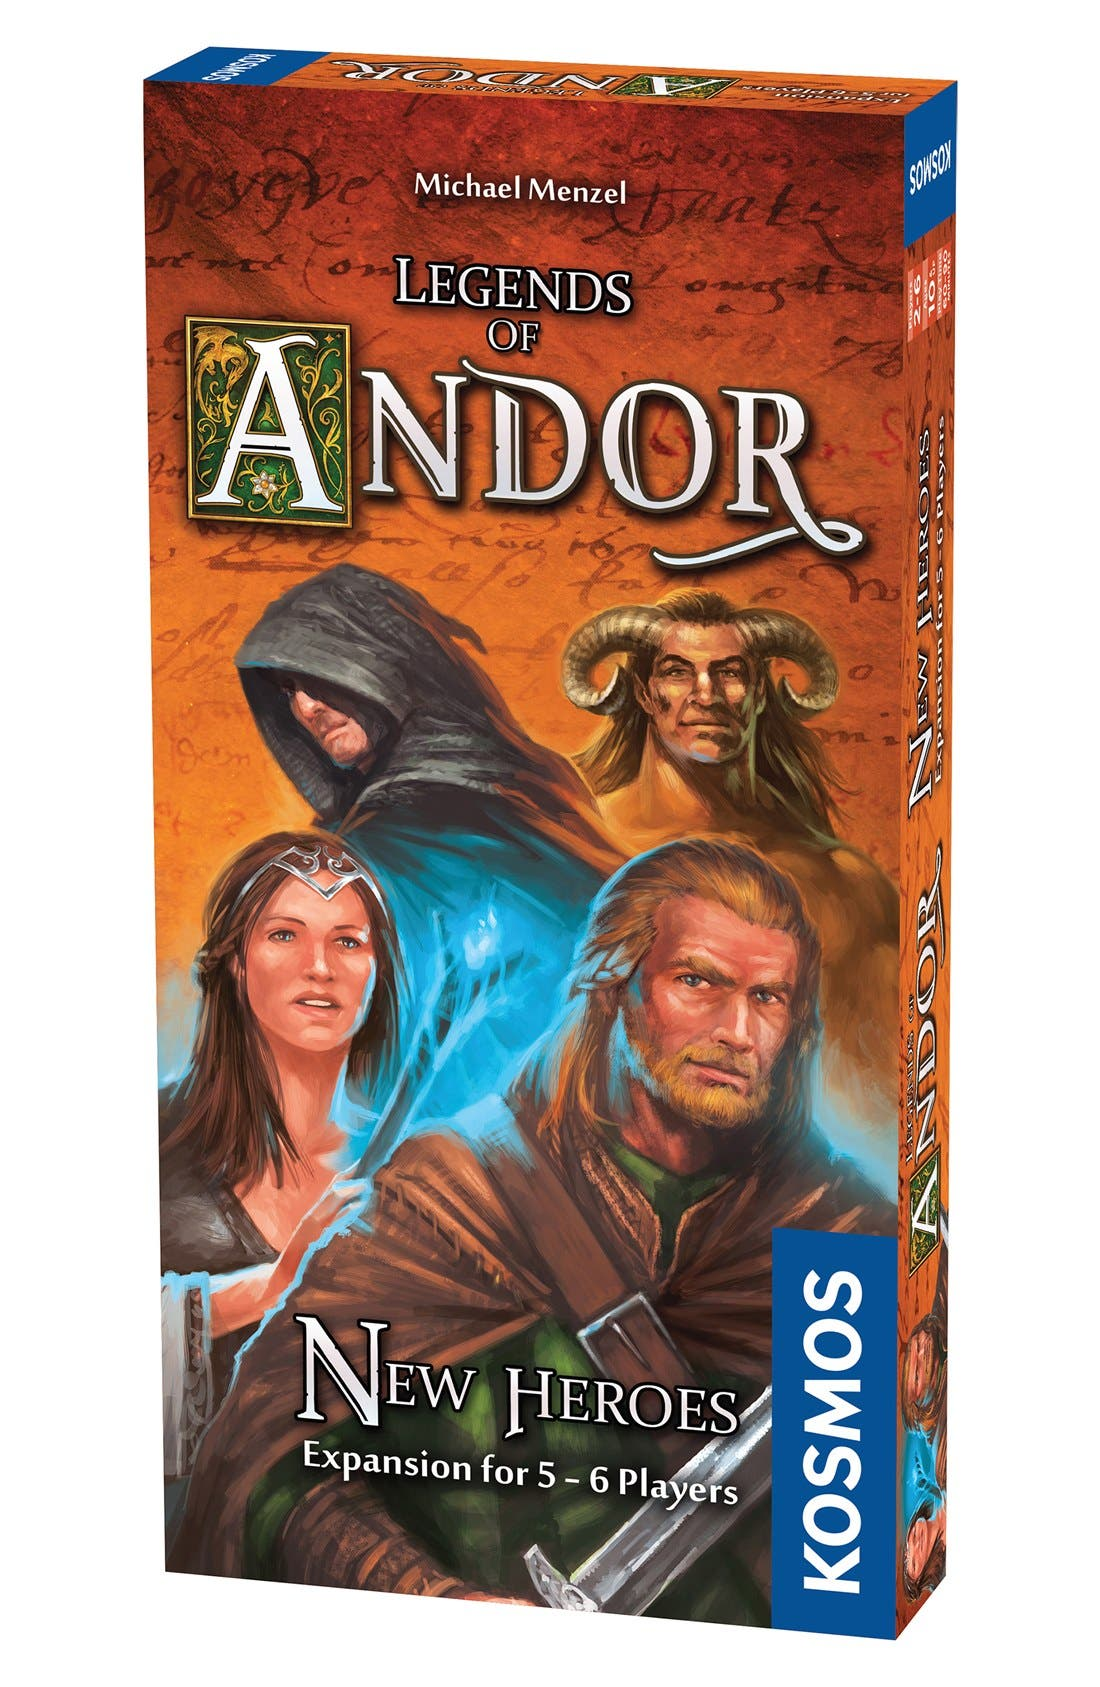 'Legends of Andor - New Heroes' Game Expansion Pack,                         Main,                         color, Brown